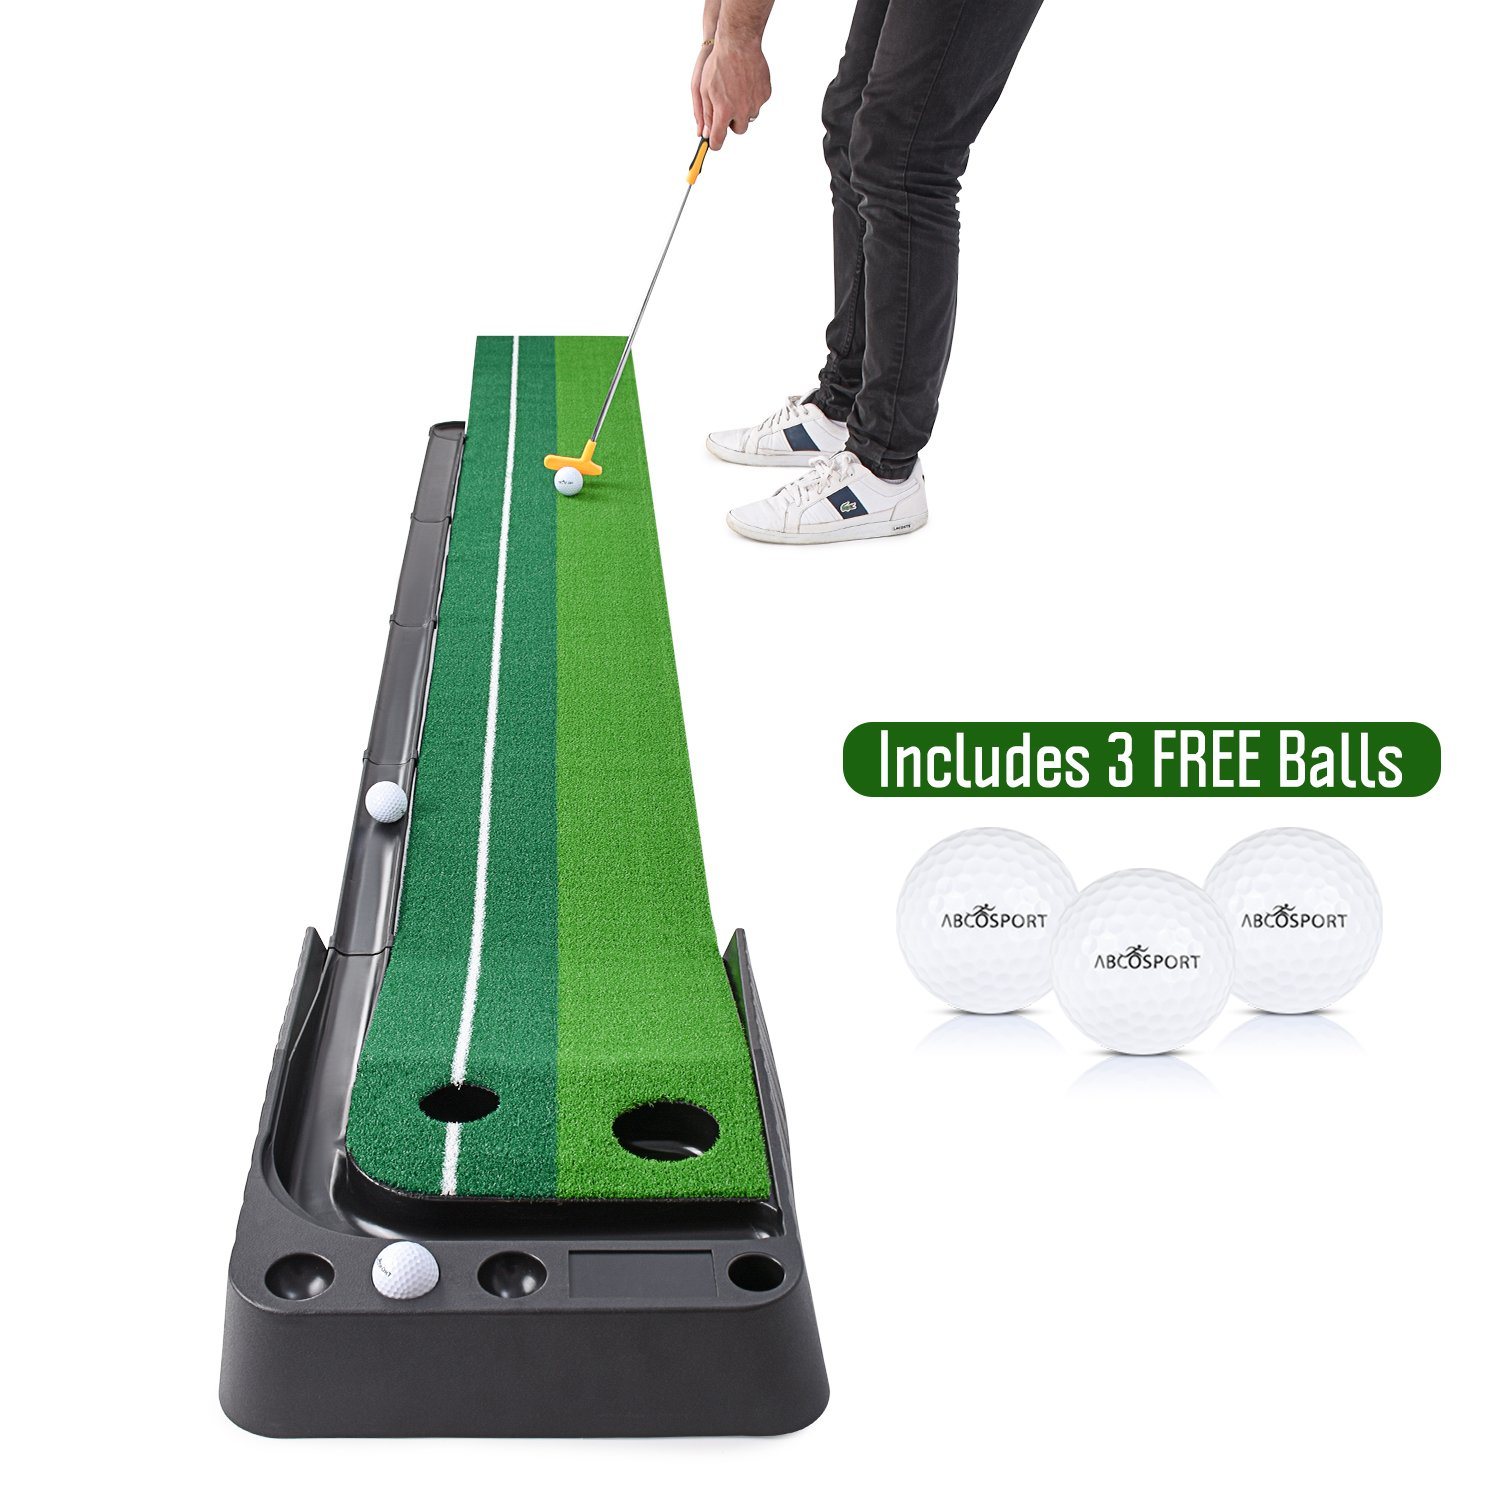 Amazon.com: Indoor Golf Putting Green - Alfombrilla portátil ...